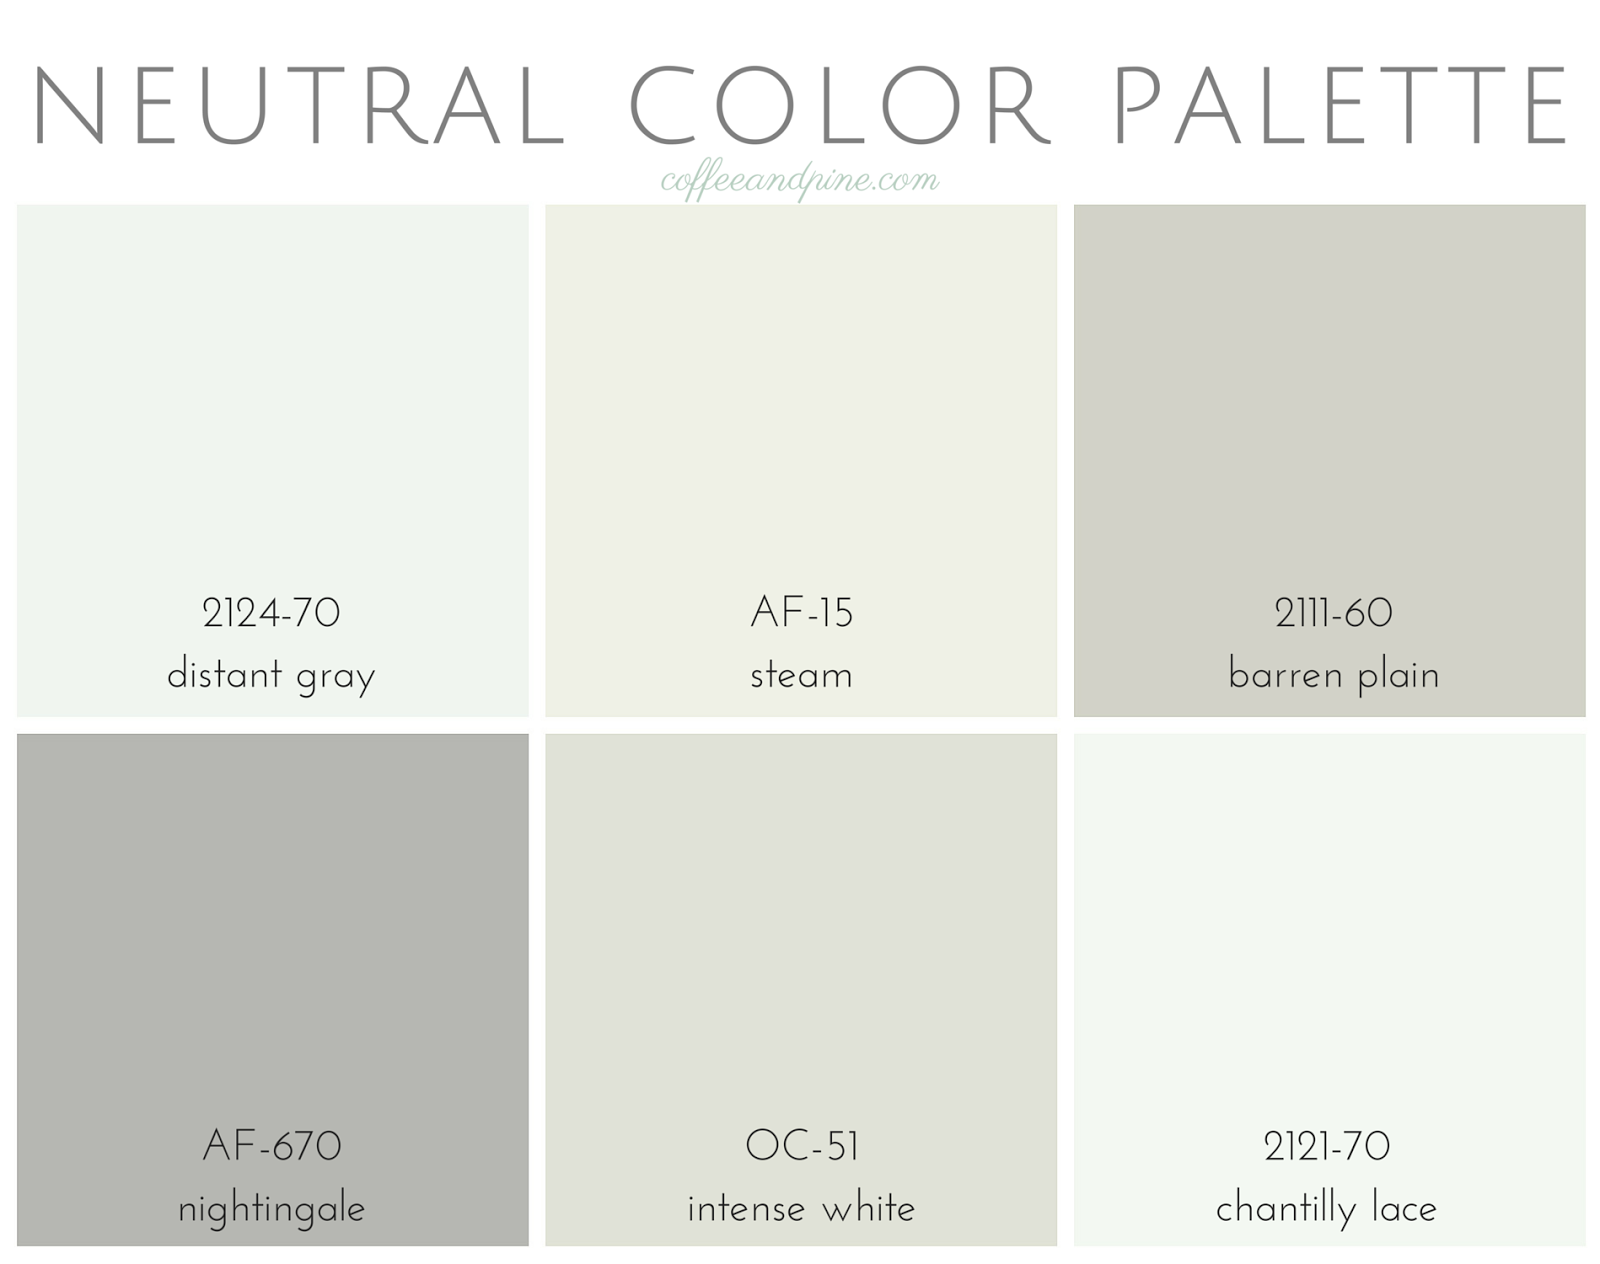 Coffee and Pine: Neutral Color Palette